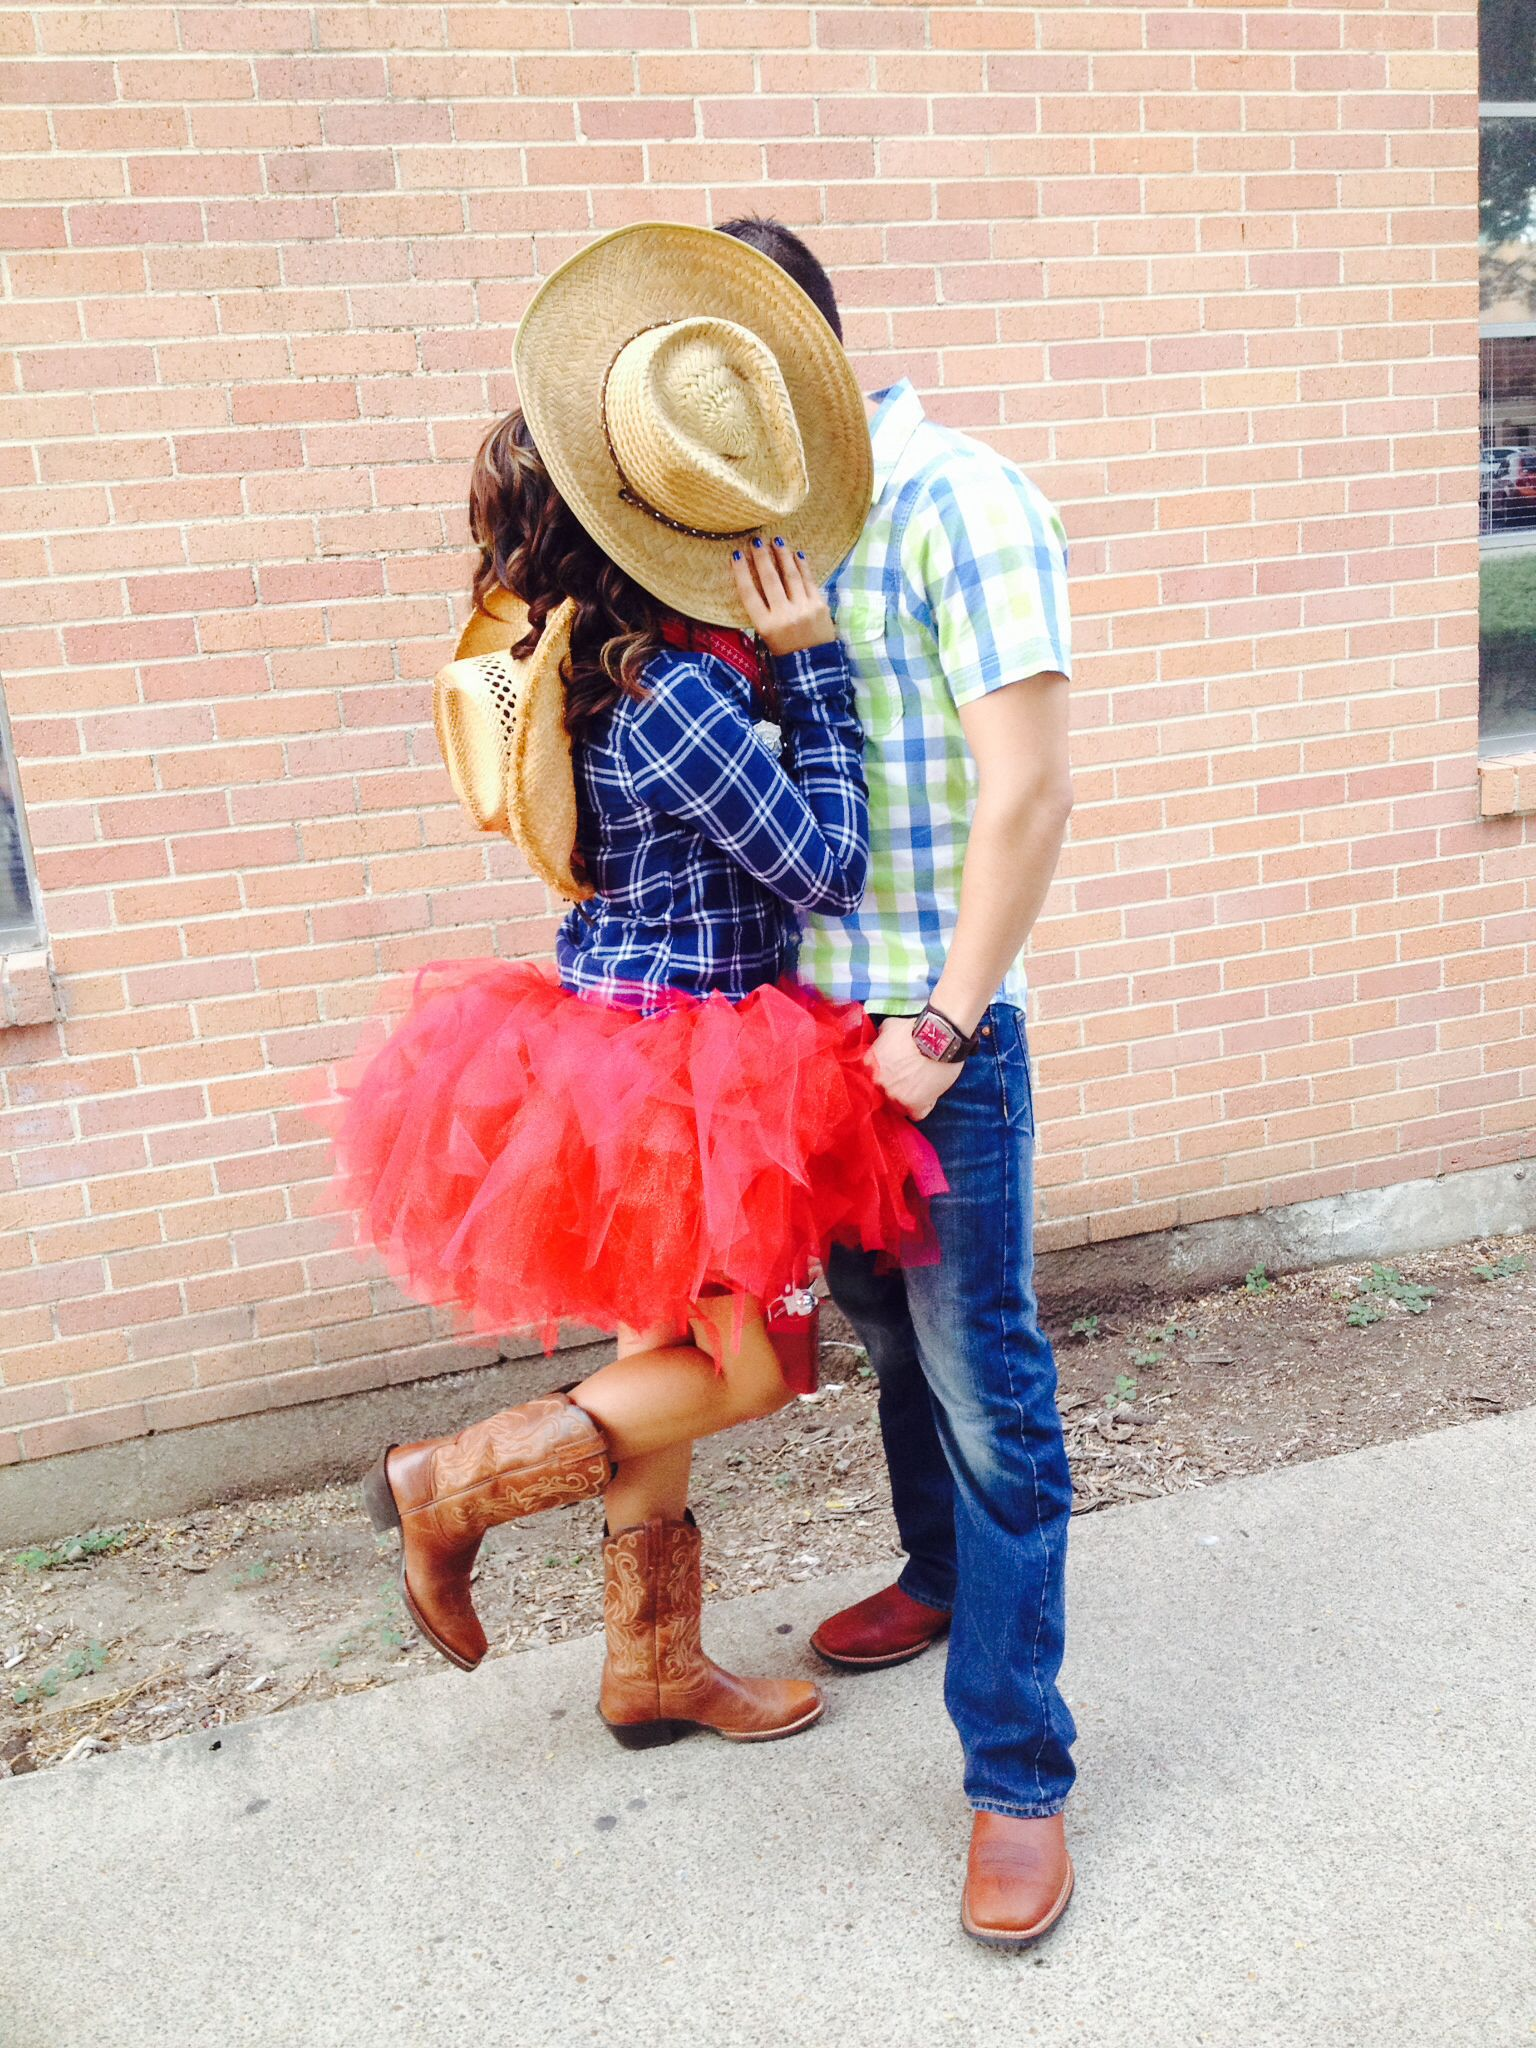 cowboy and cowgirl couple costume tutu skirt and boots halloween ideas pinterest kost m. Black Bedroom Furniture Sets. Home Design Ideas